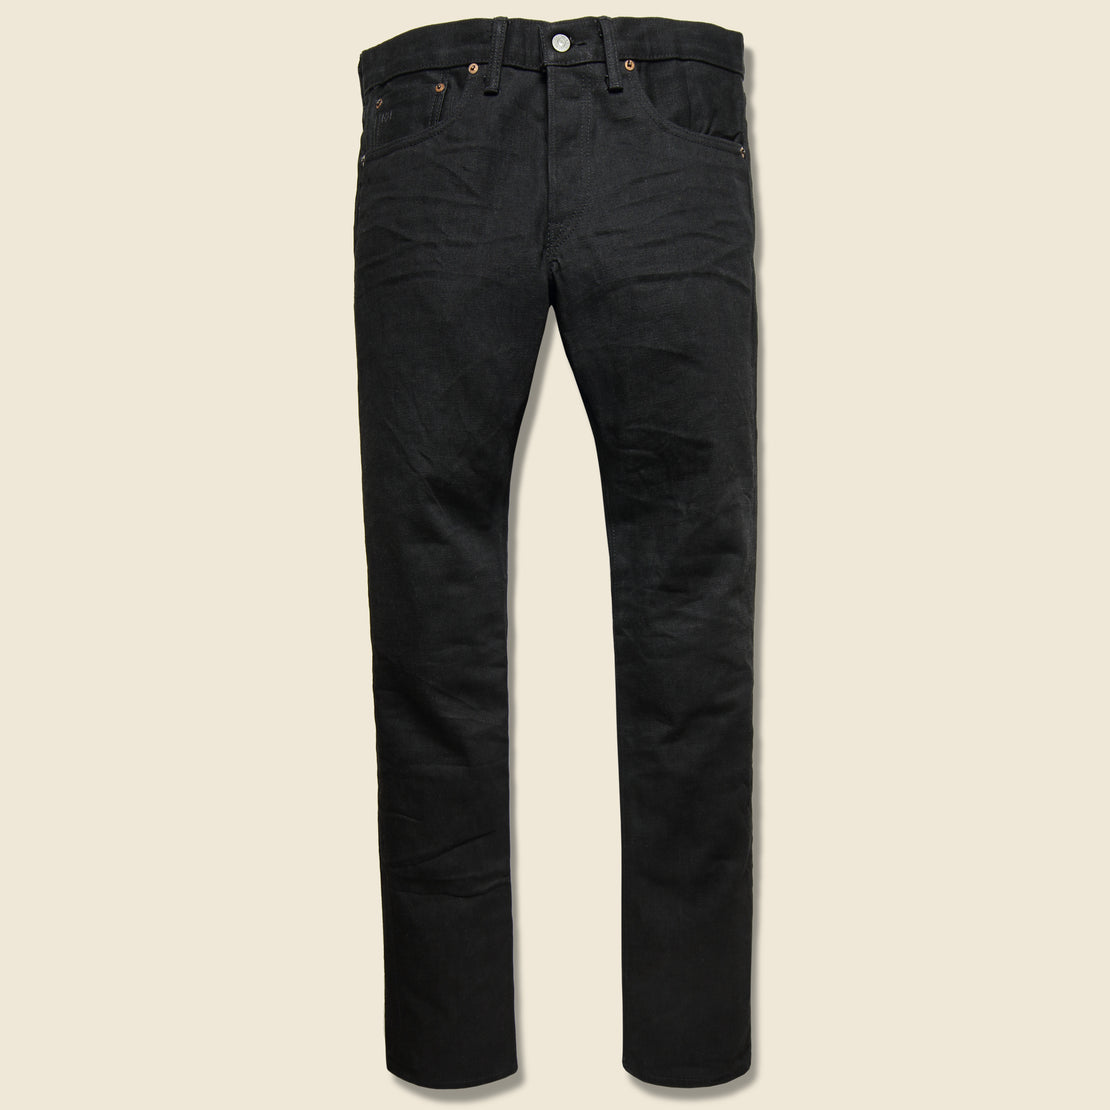 RRL Slim Fit Jean - Black on Black